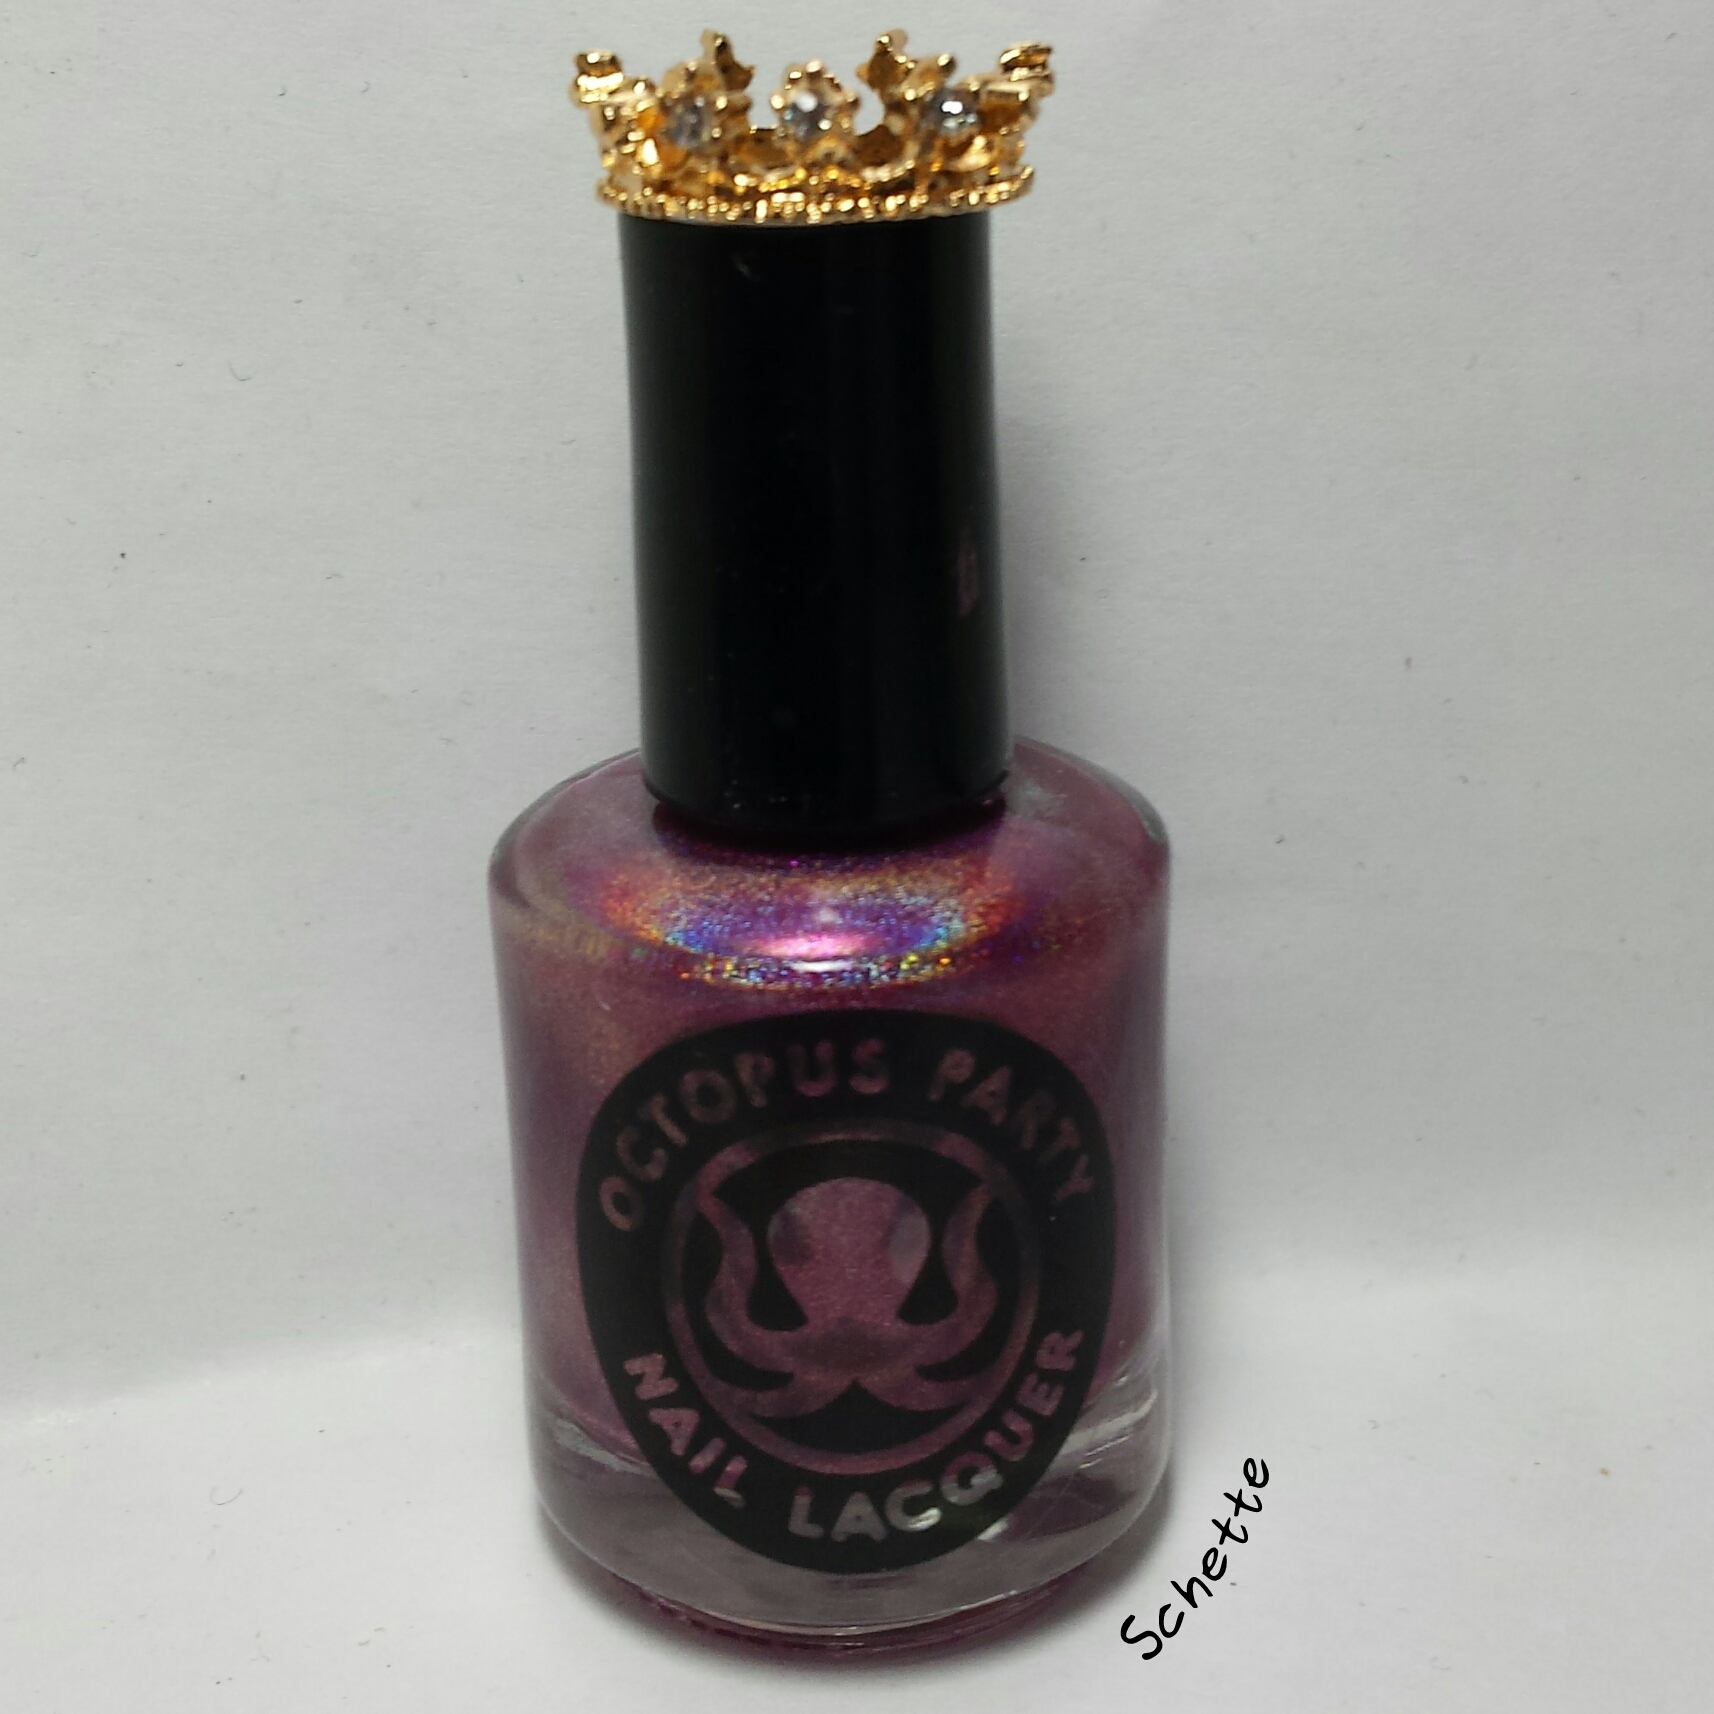 Octopus Party Nail Lacquer - My Kingdom for Glitters